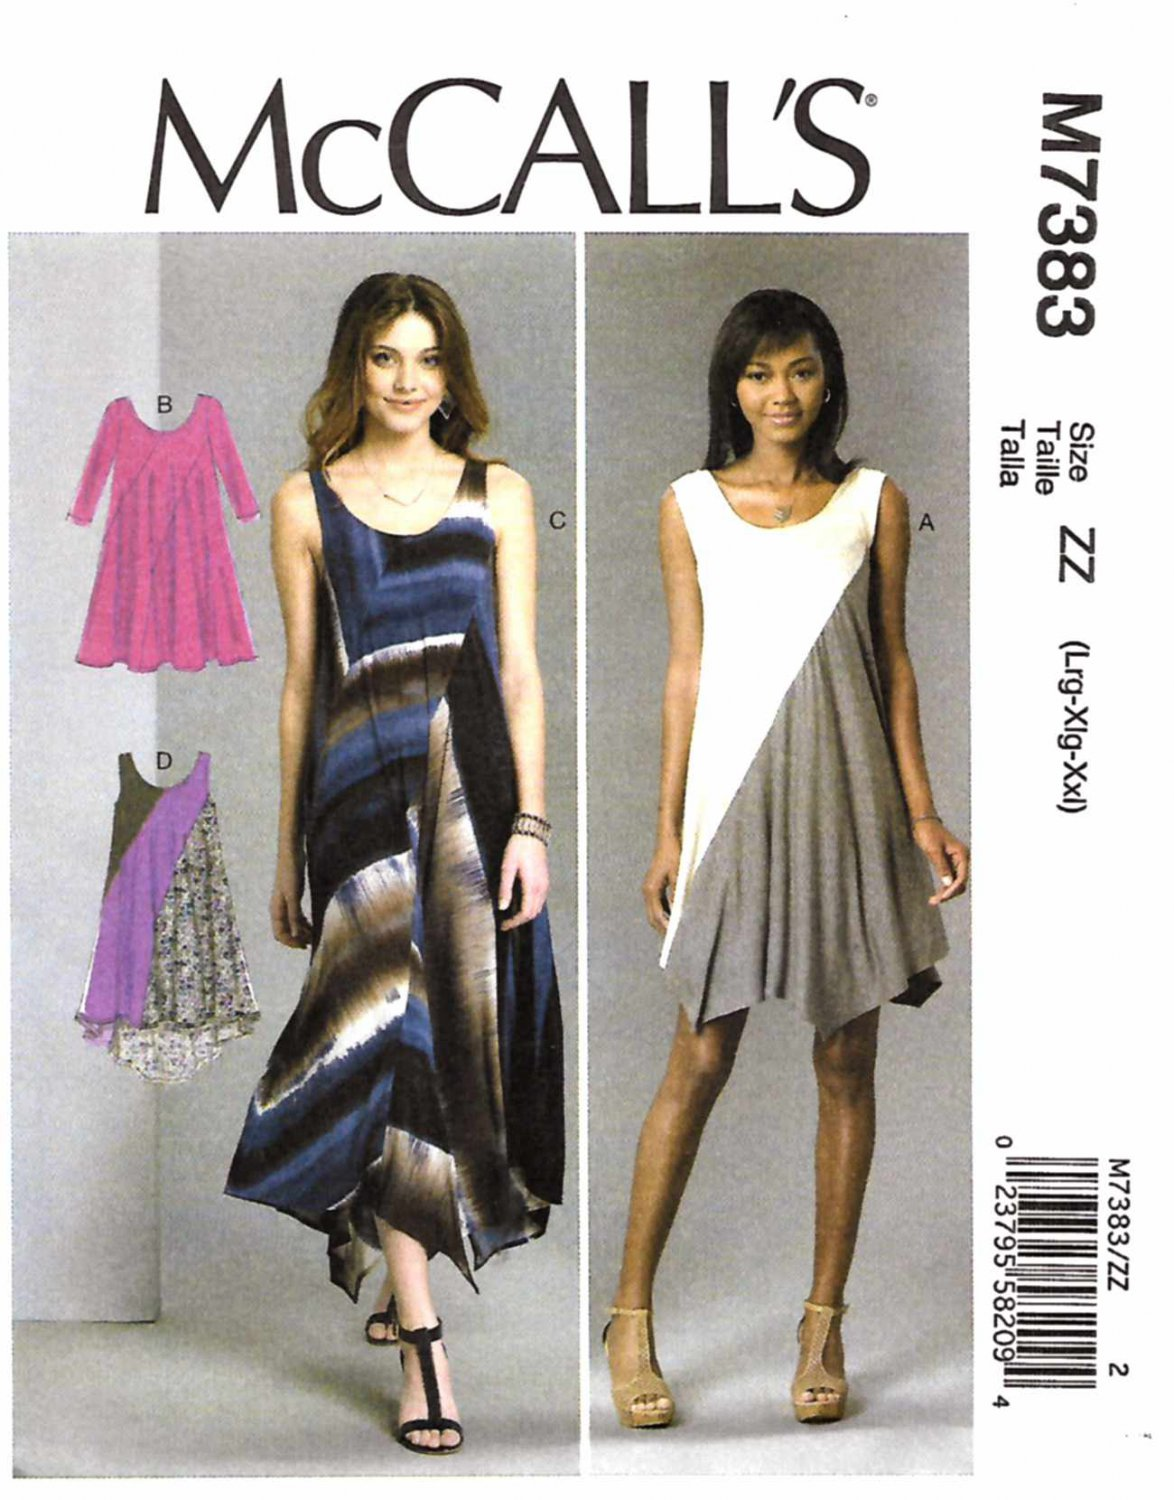 McCall's Sewing Pattern 7383 Misses Size 16-26 Easy Knit Pullover Dress Seam Details